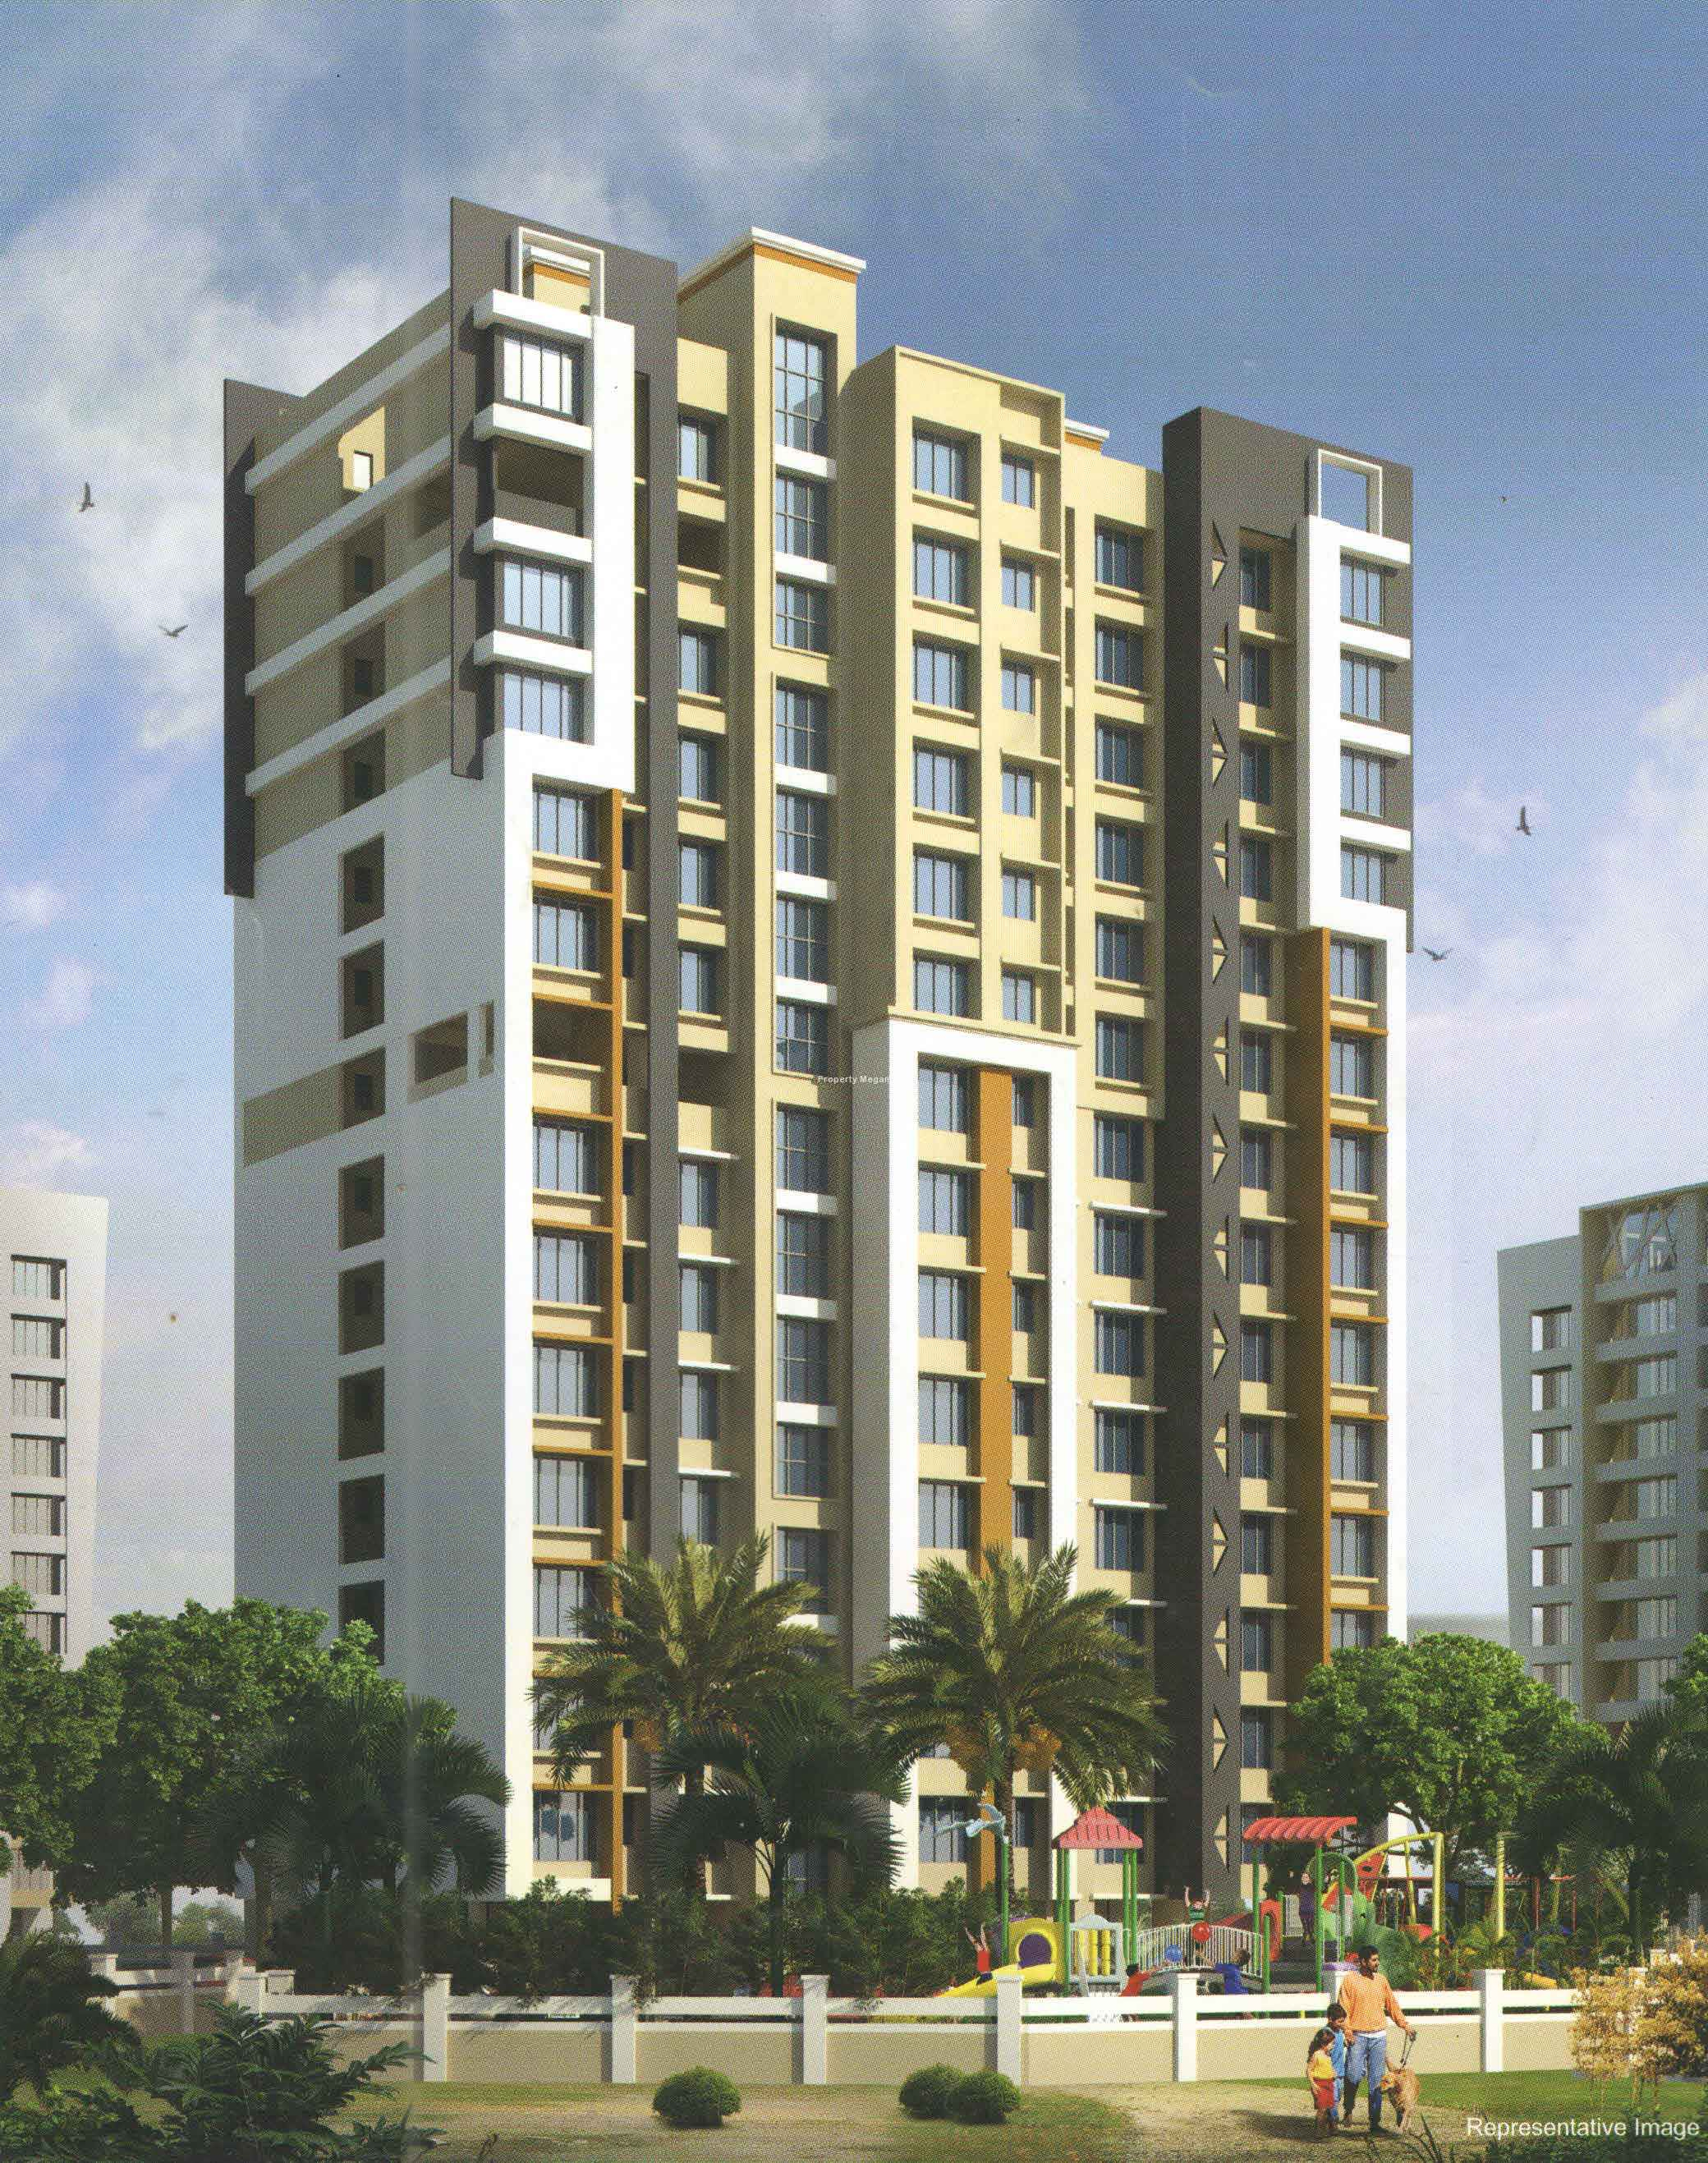 Lodha global parks in Dombivali by Lodha Group | Property